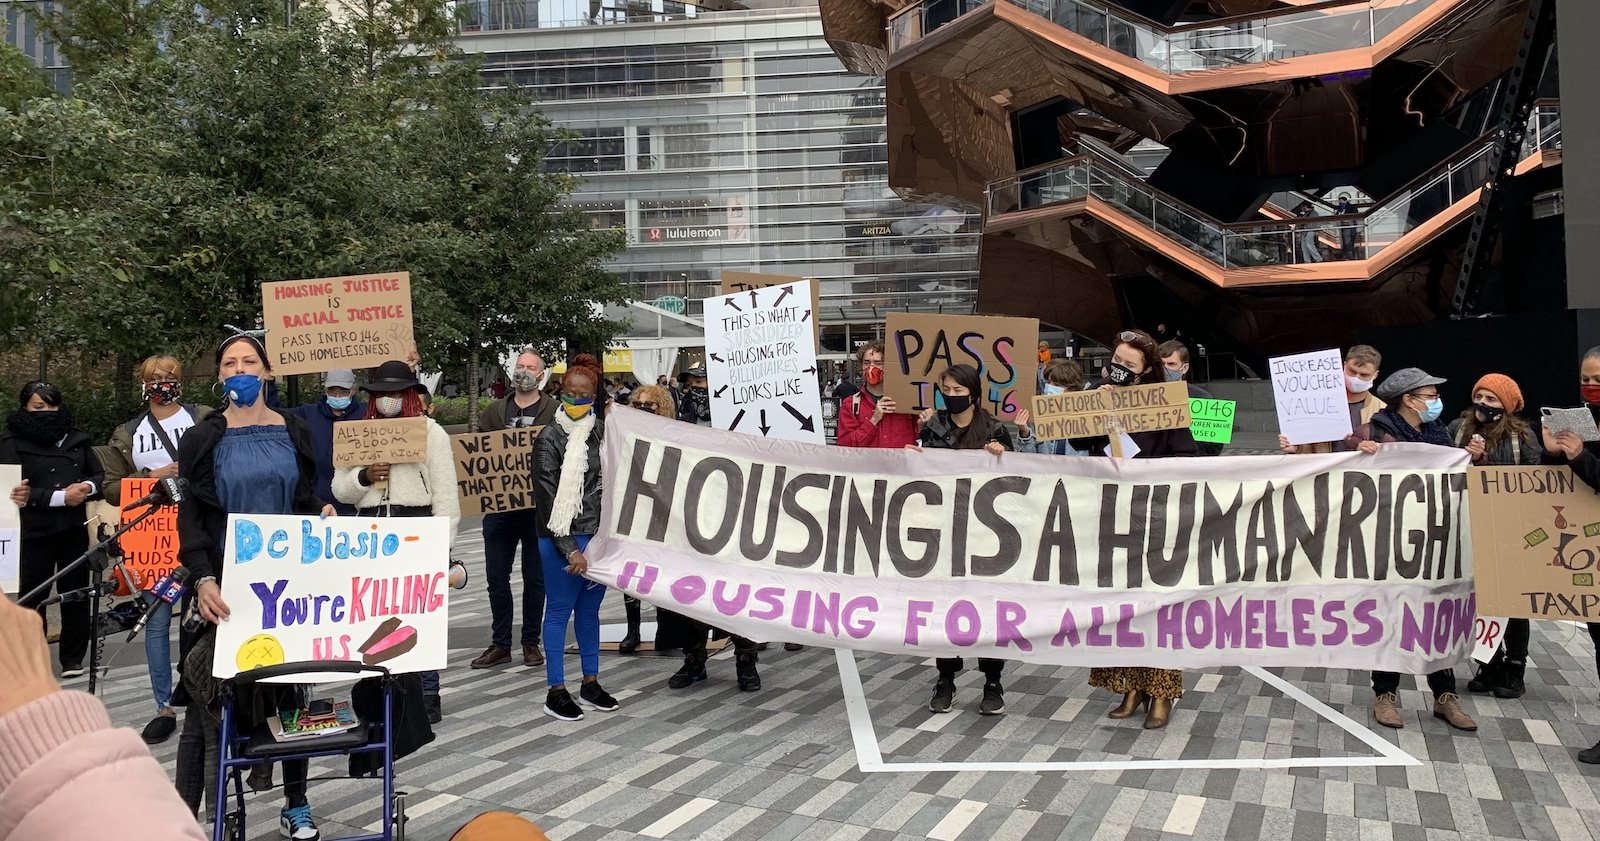 Housing action, protest at Hudson Yards with banners, housing is a human right